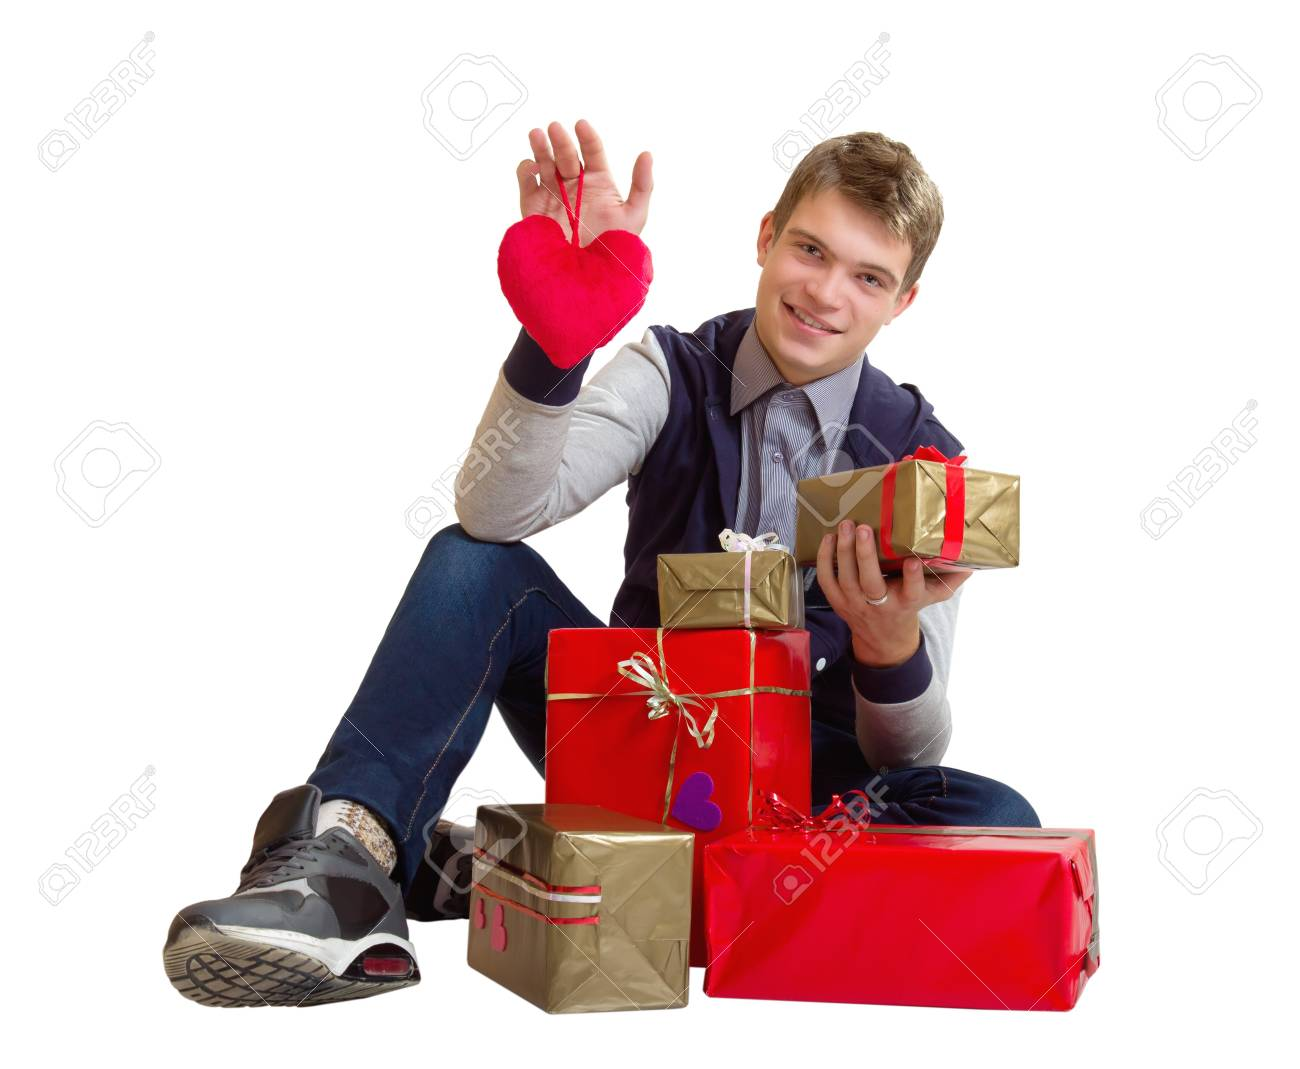 Valentines Man /  Teenager holding heart and gifts isolated on white background Stock Photo - 17370184